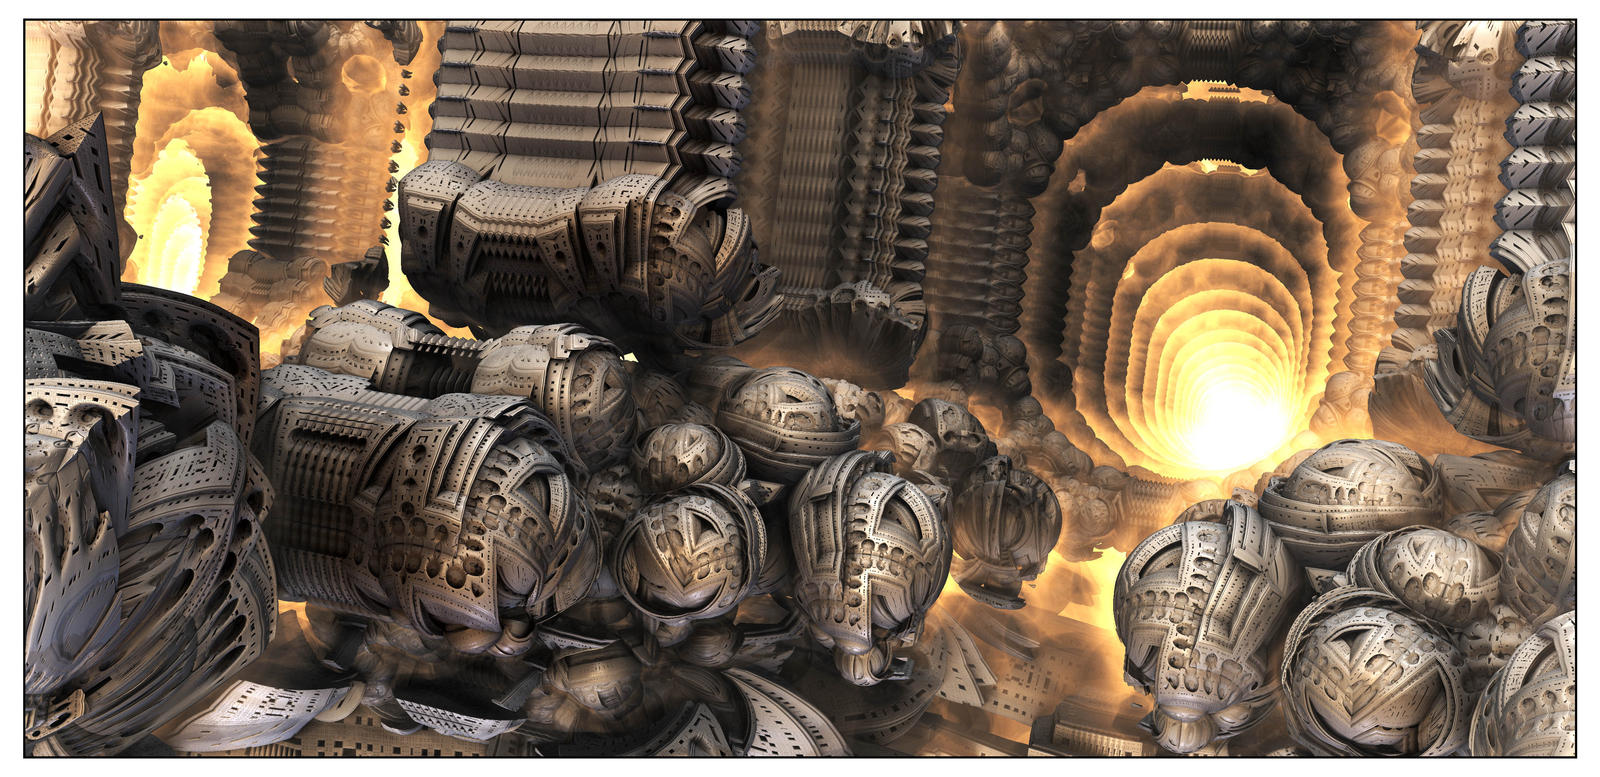 Engine Room of Valhalla by bluefish3d